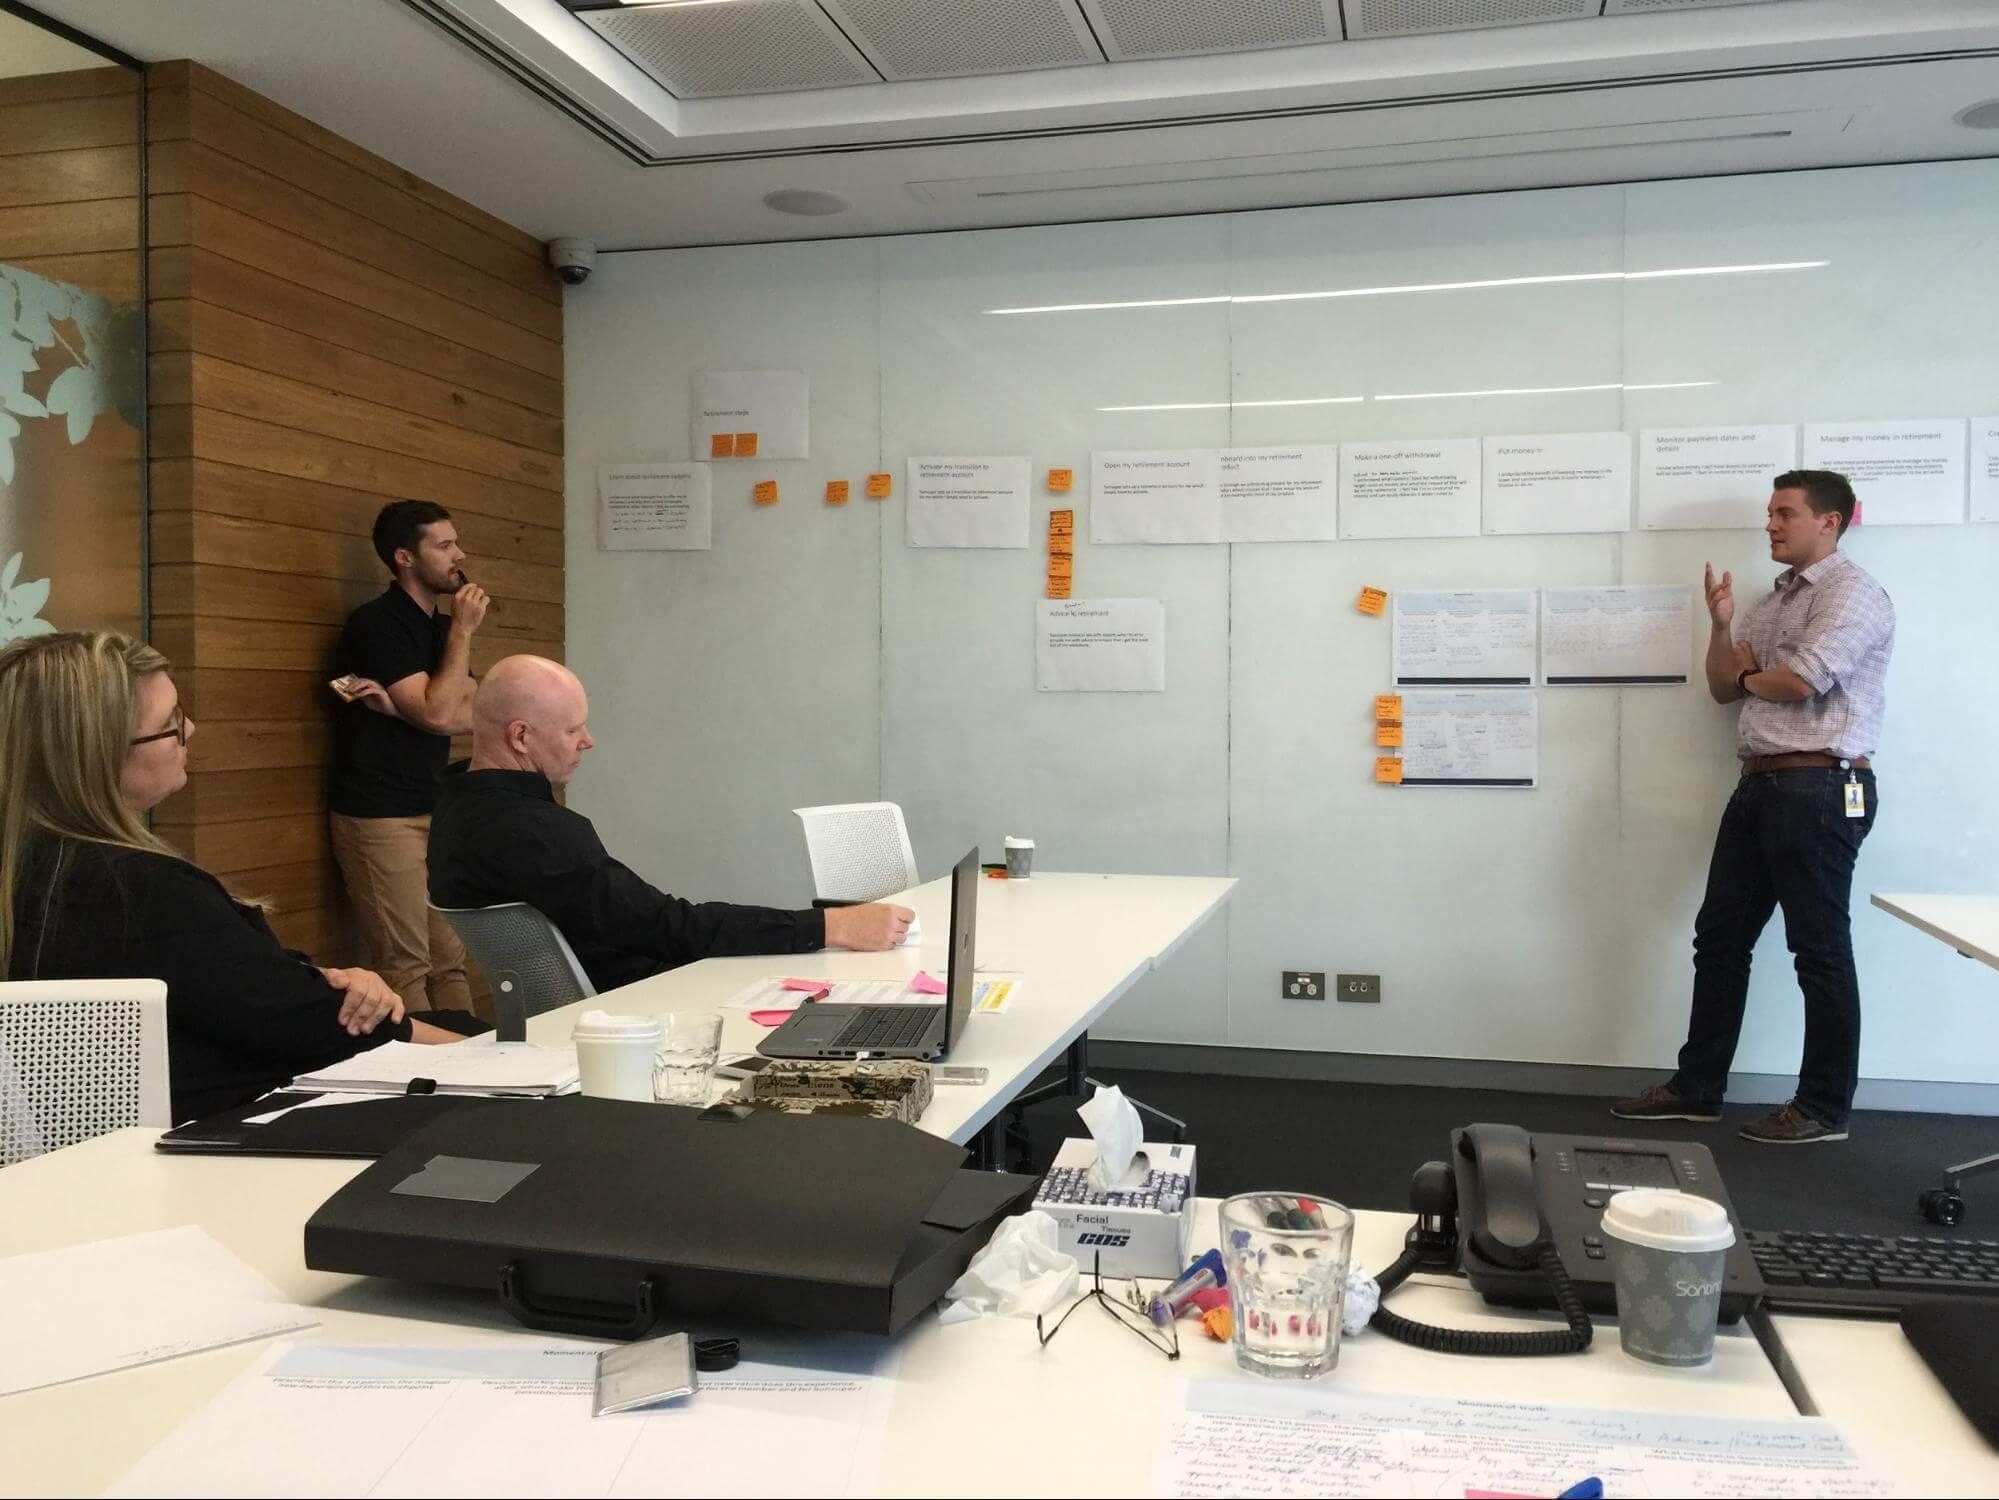 The cross-functional team workshopping customer journey experience.